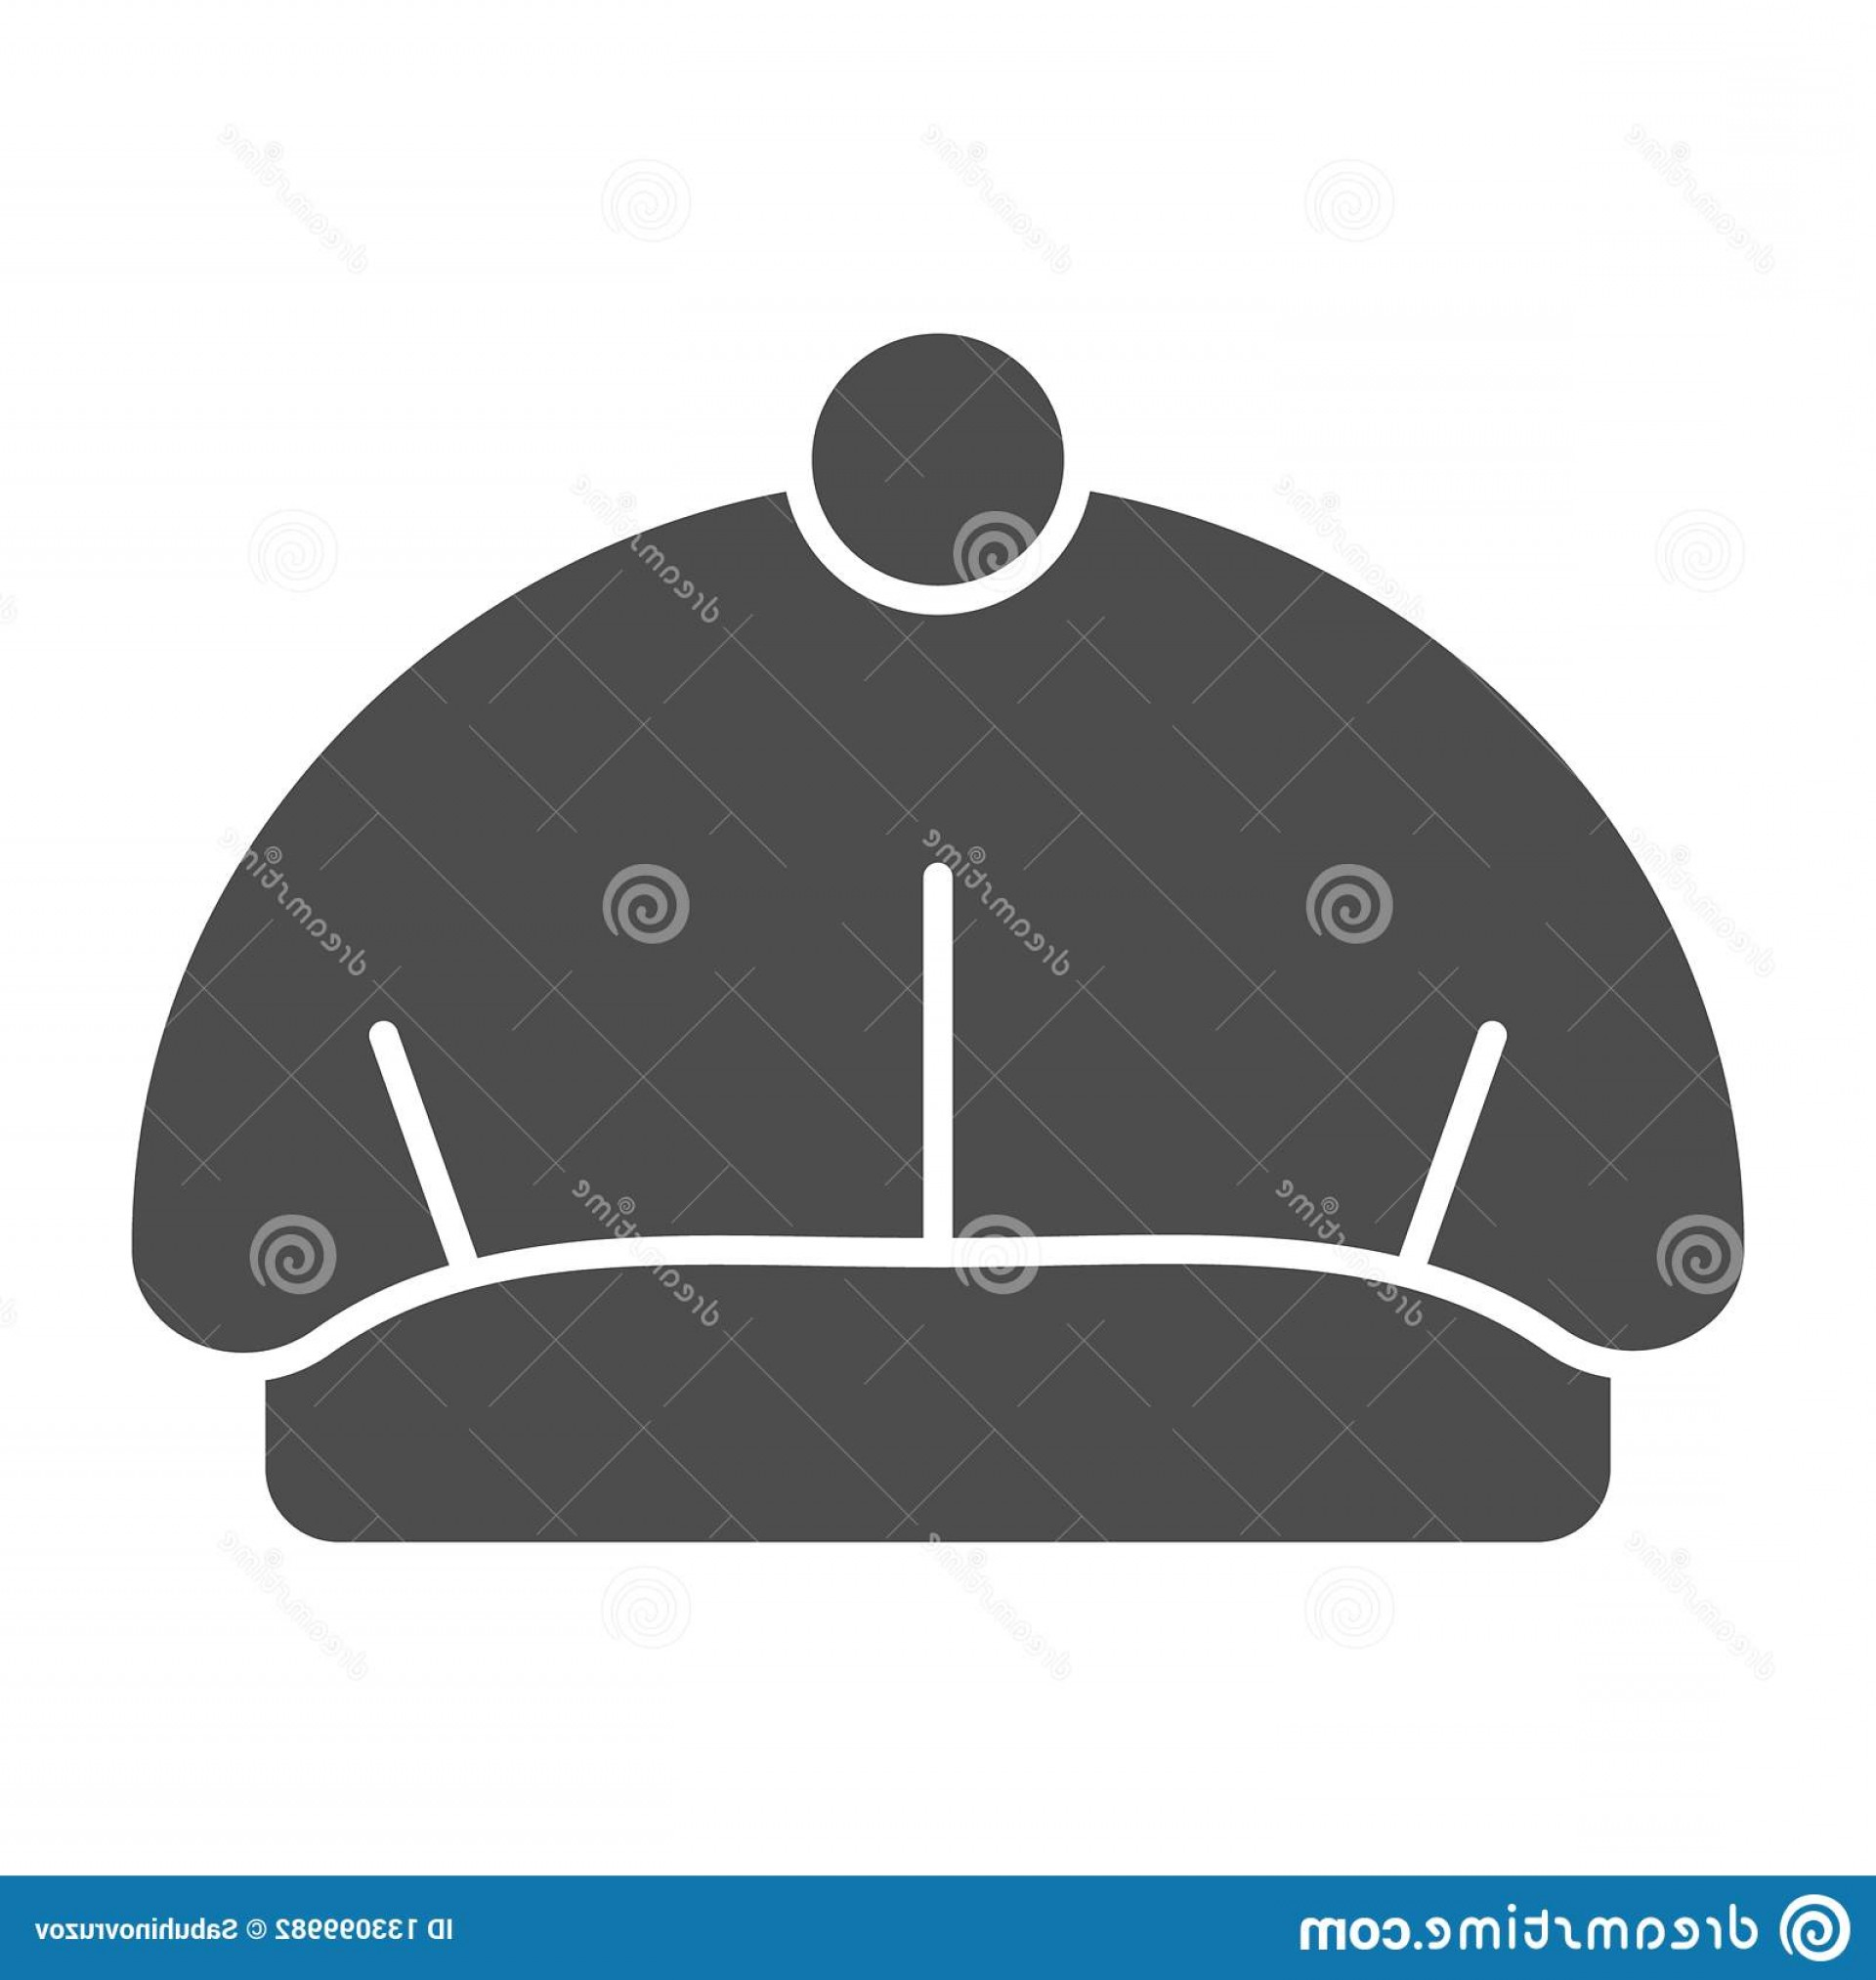 Beret Hat Vector: Beret Solid Icon Hat Vector Illustration Isolated White Cap Glyph Style Design Designed Web App Eps Beret Solid Icon Image